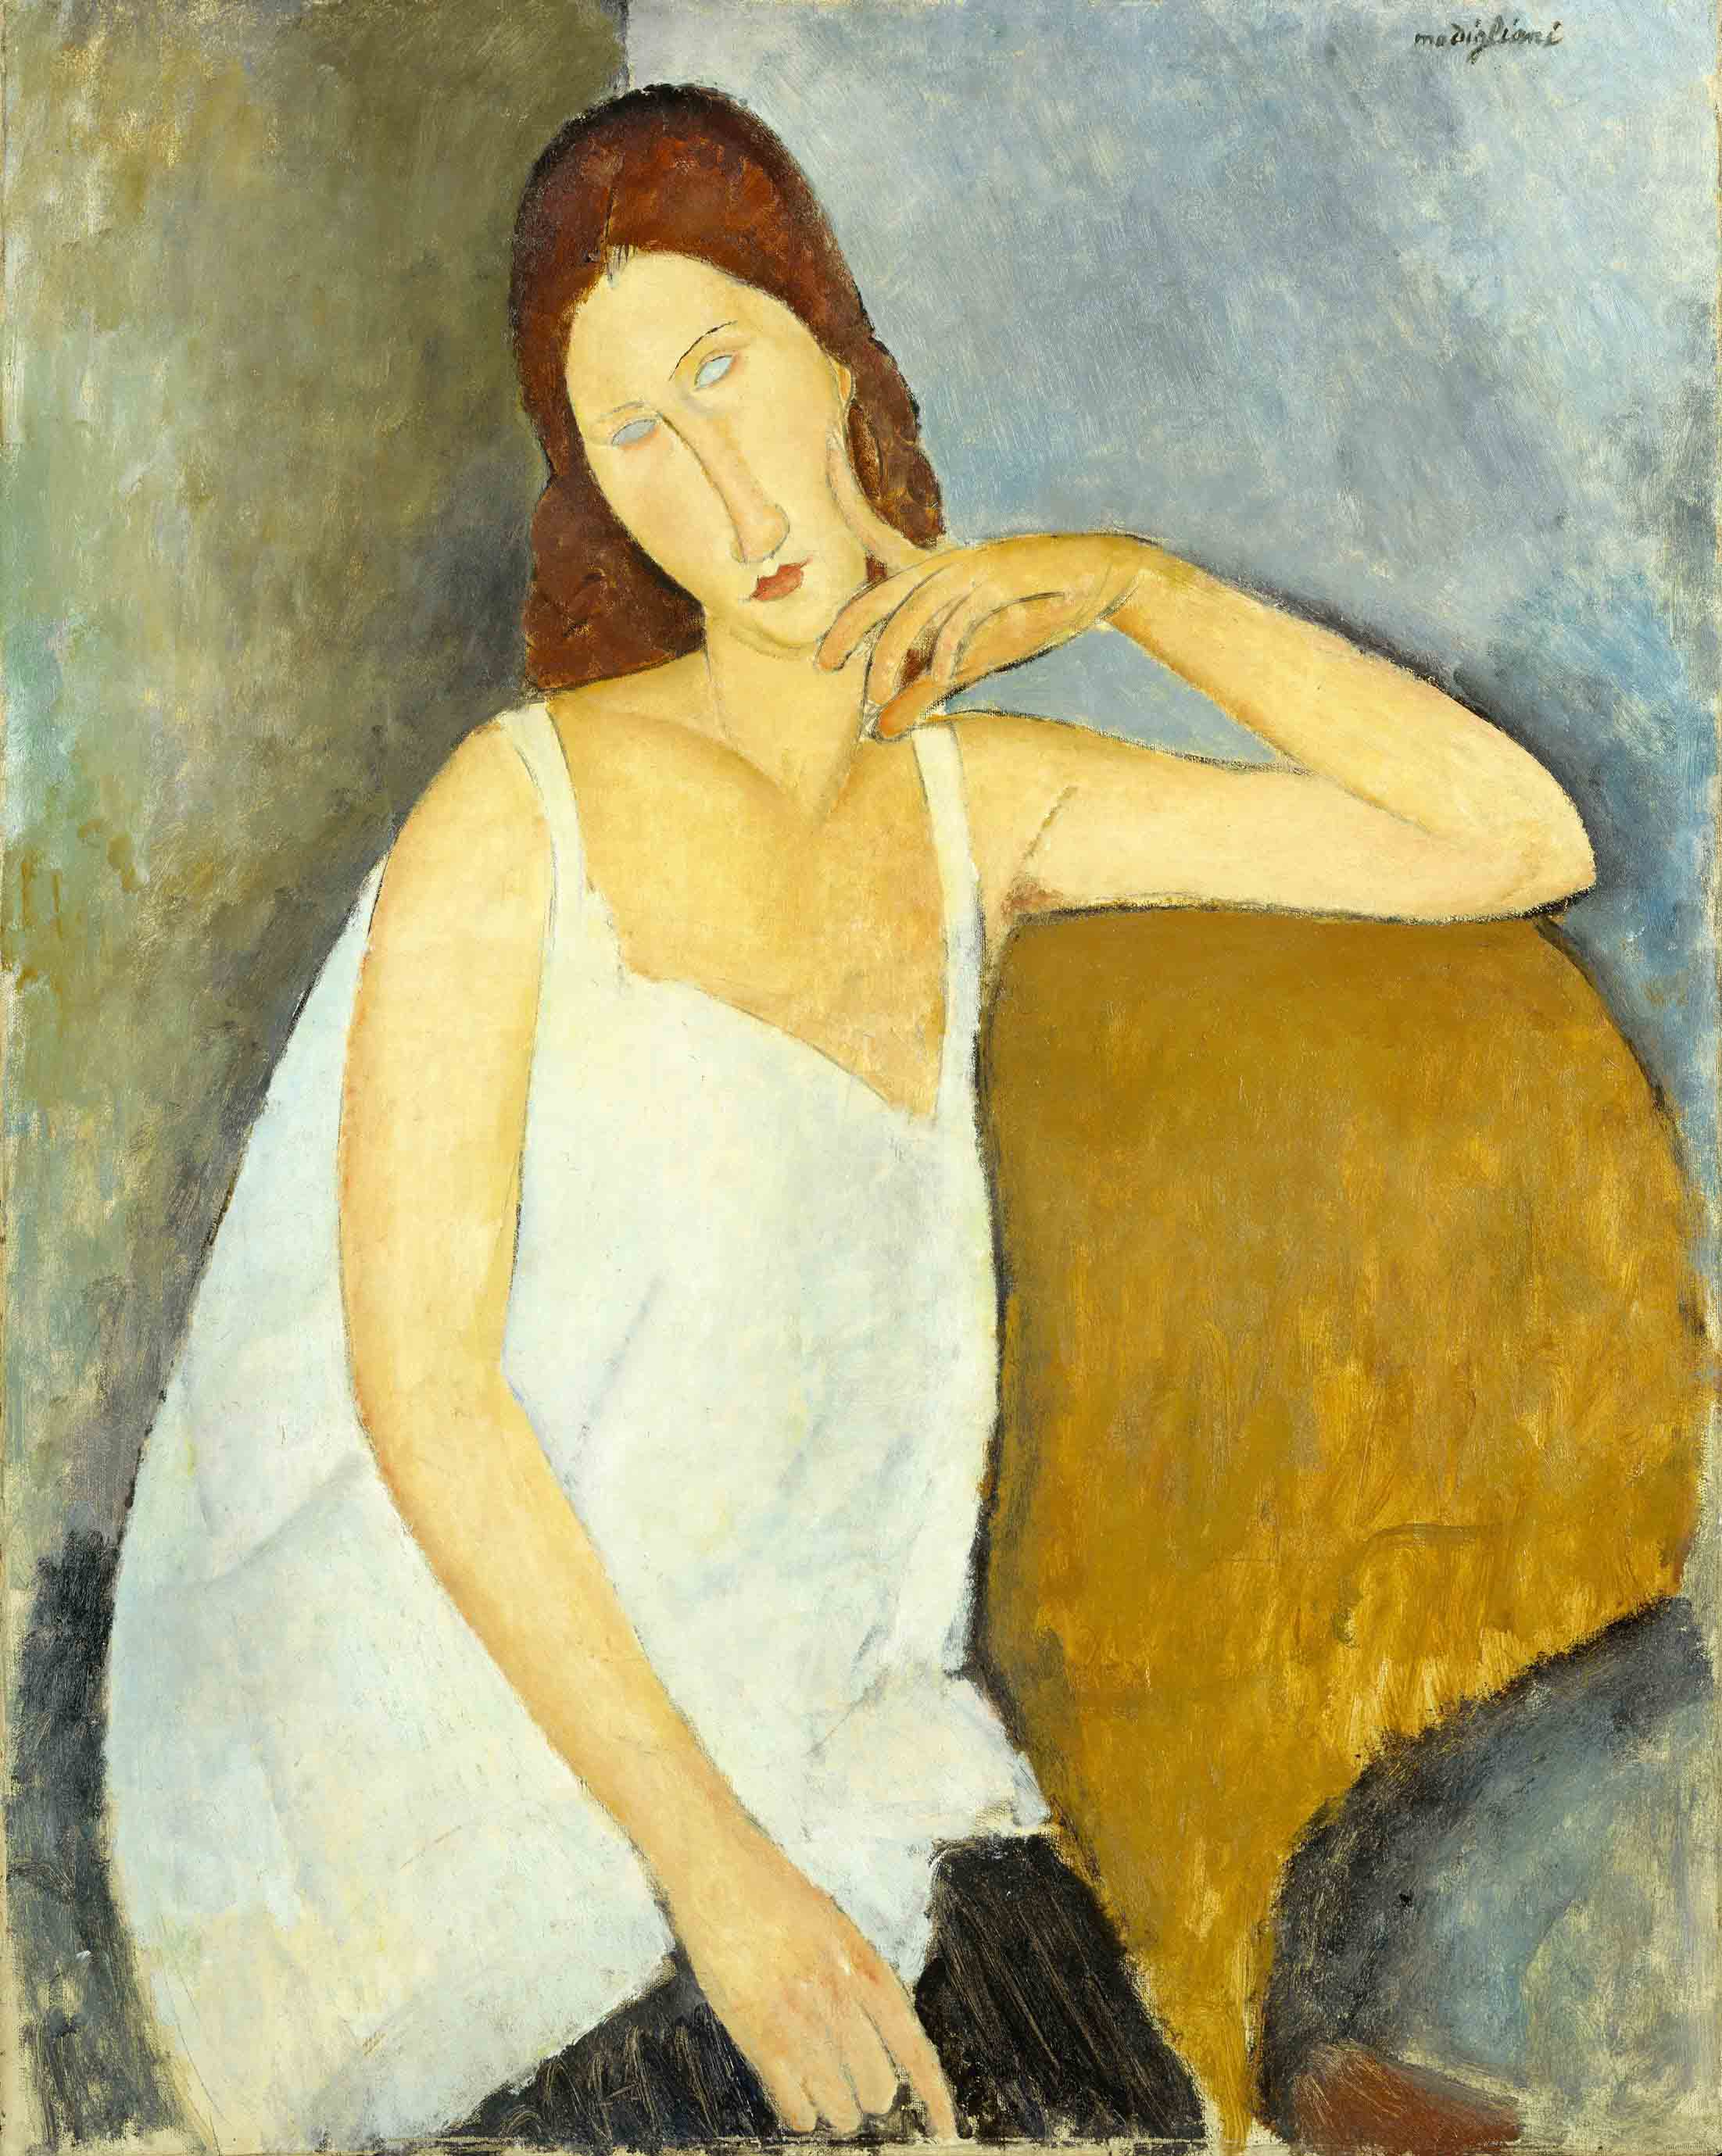 Amedeo Modigliani 1884 - 1920 Jeanne Hébuterne 1919 Medium Oil paint on canvas 914 x 730 mm The Metropolitan Museum of Art, New York